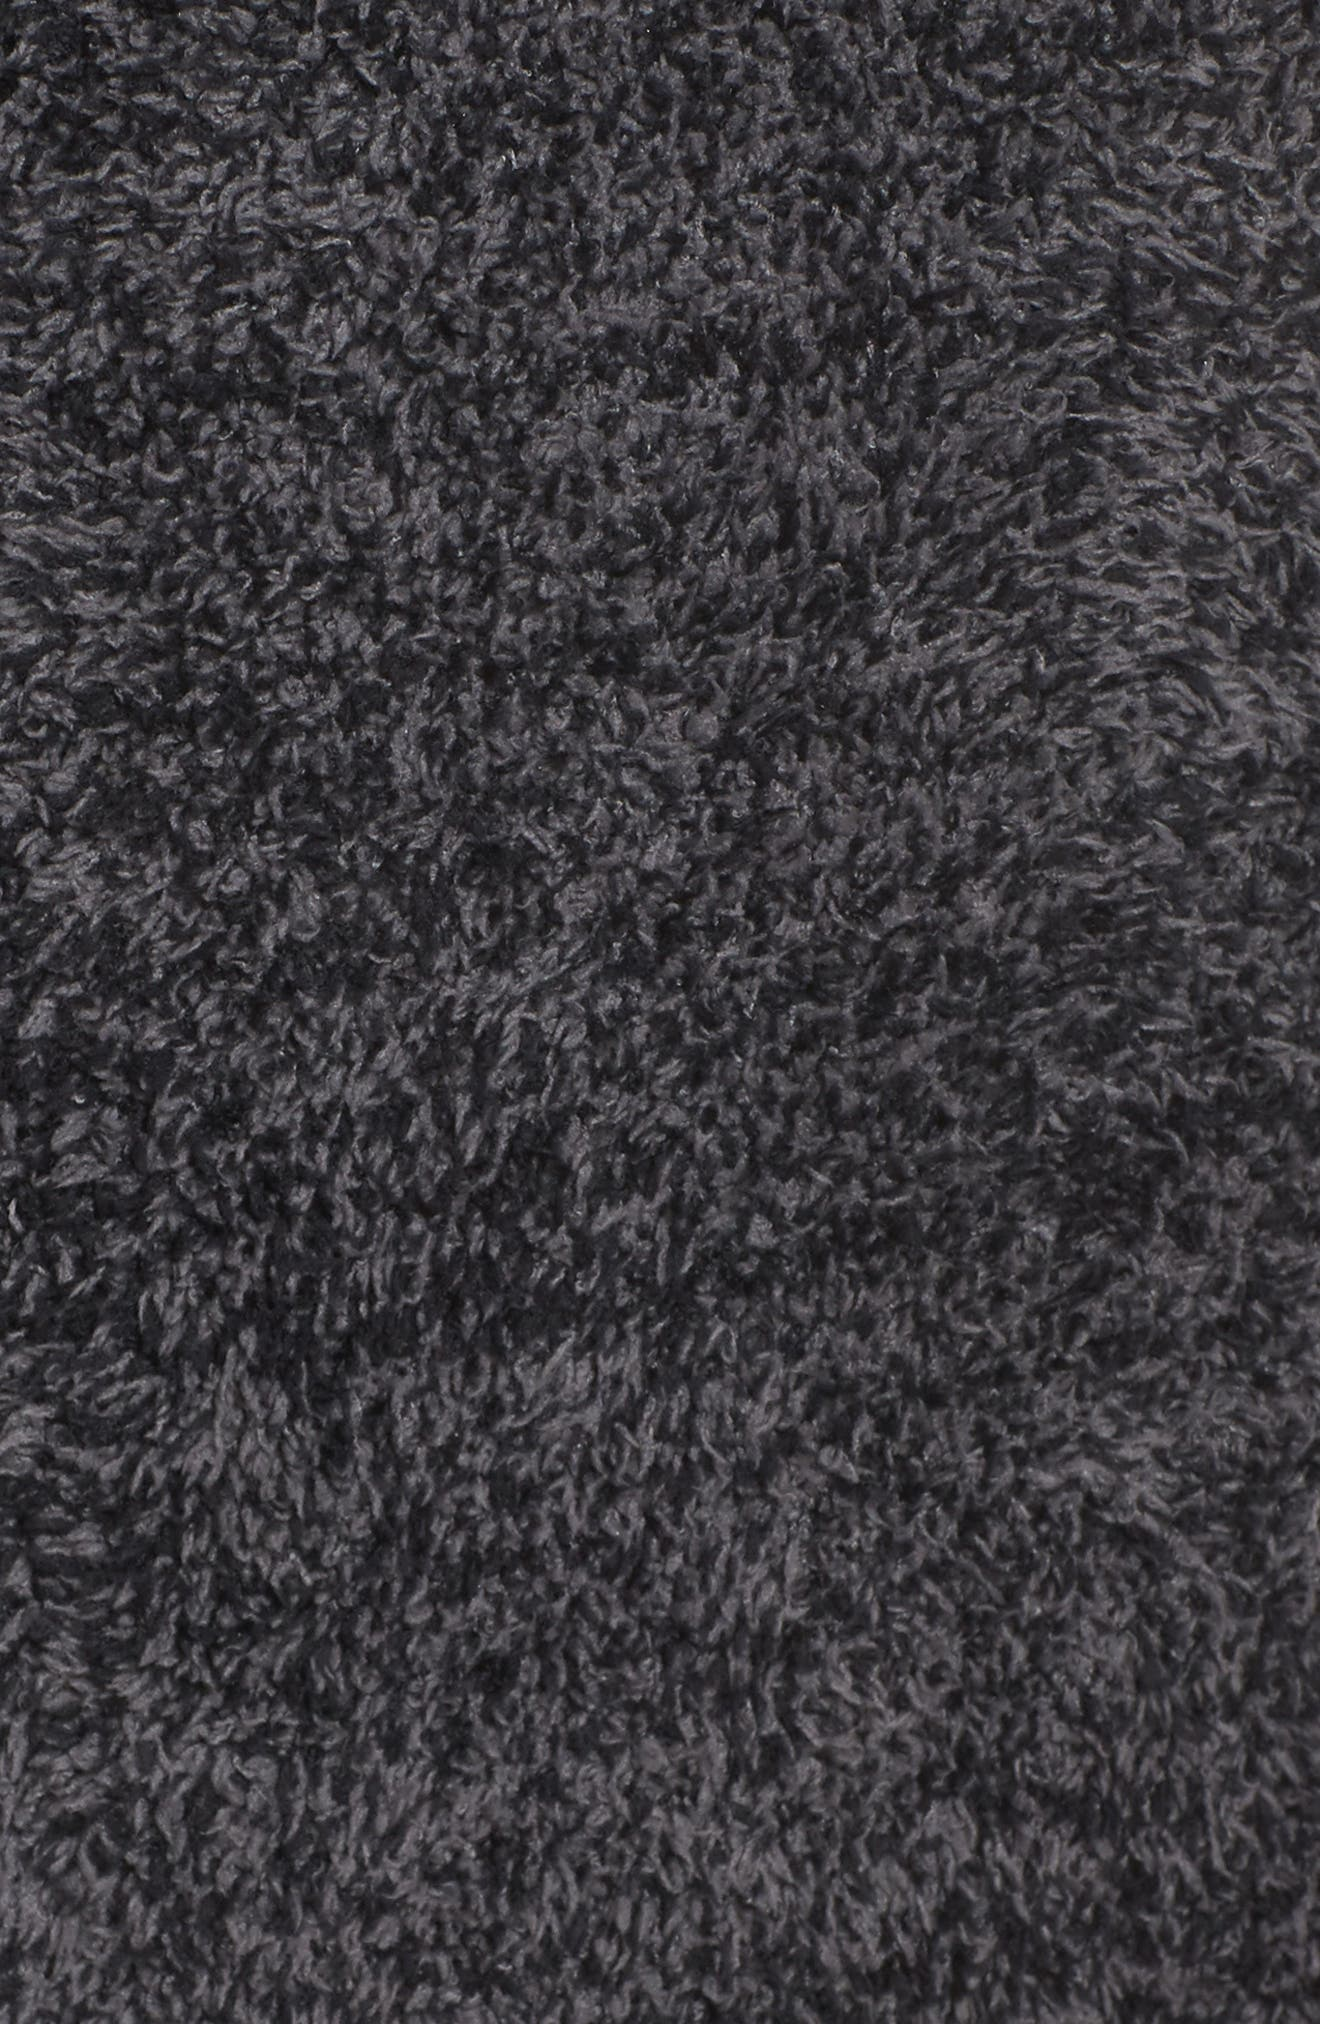 CozyChic<sup>®</sup> Robe,                             Alternate thumbnail 6, color,                             Black/ Graphite